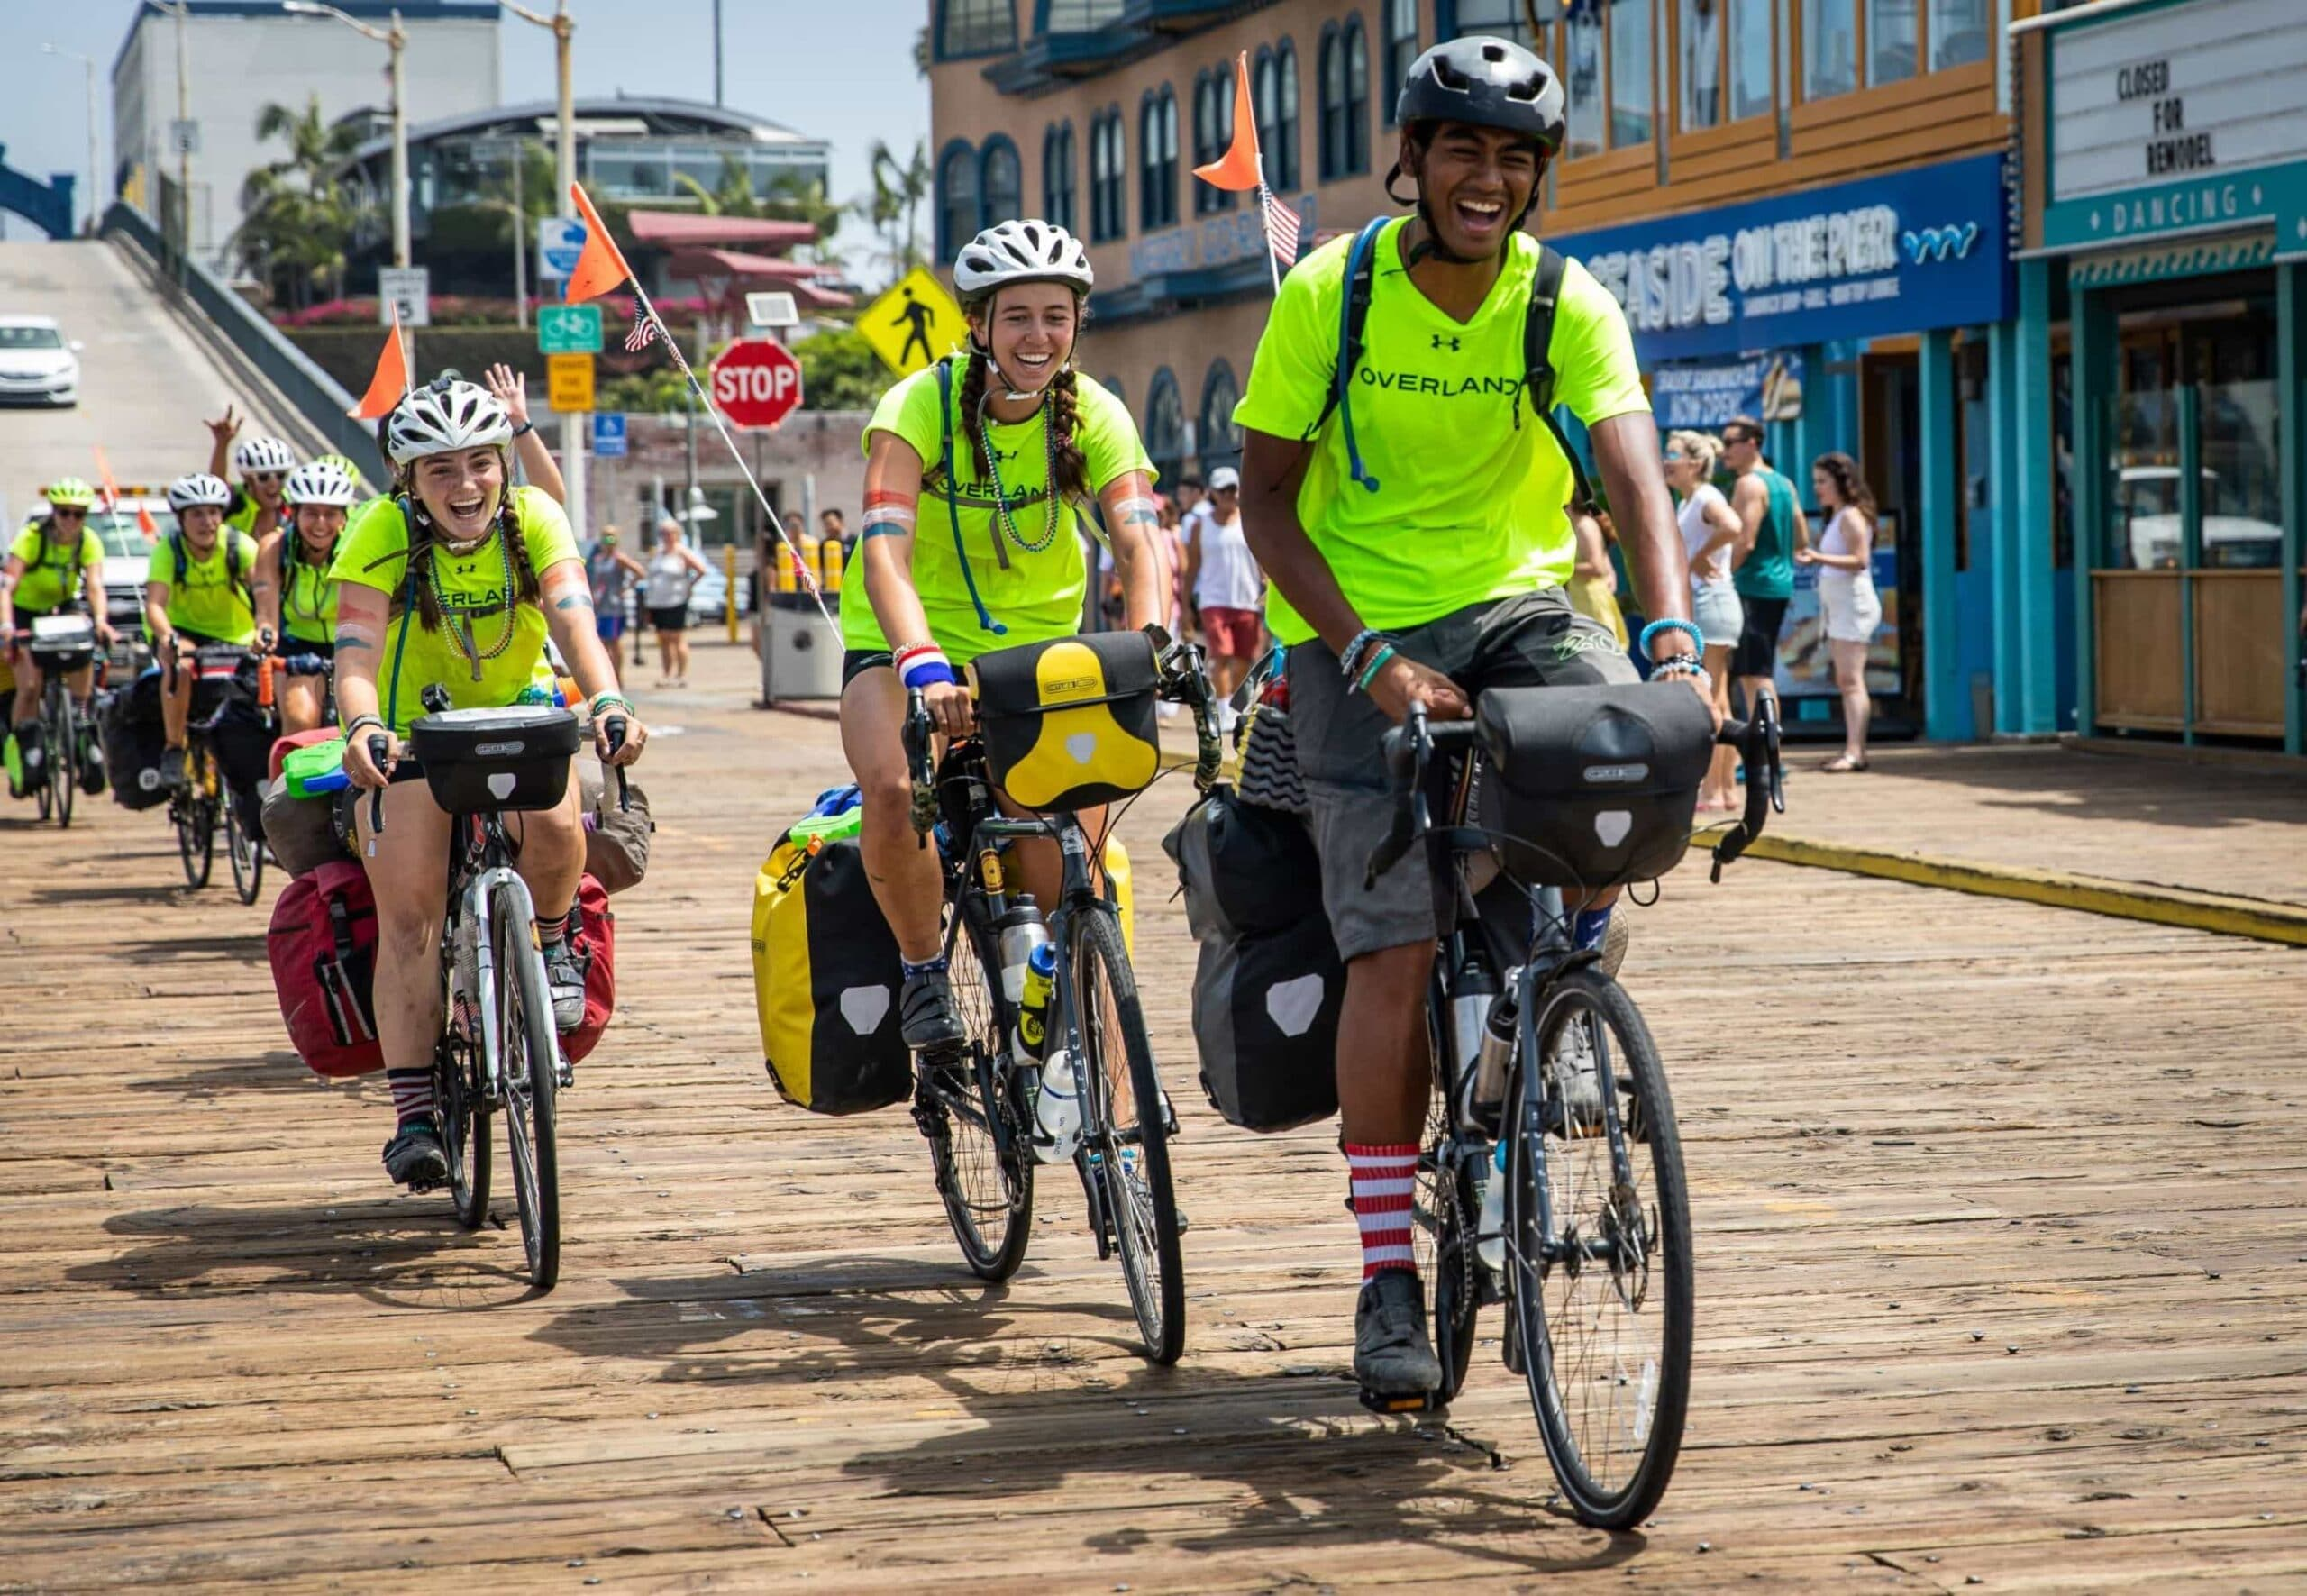 Smiles galore when a teen summer biking trip stops in a town for lunch